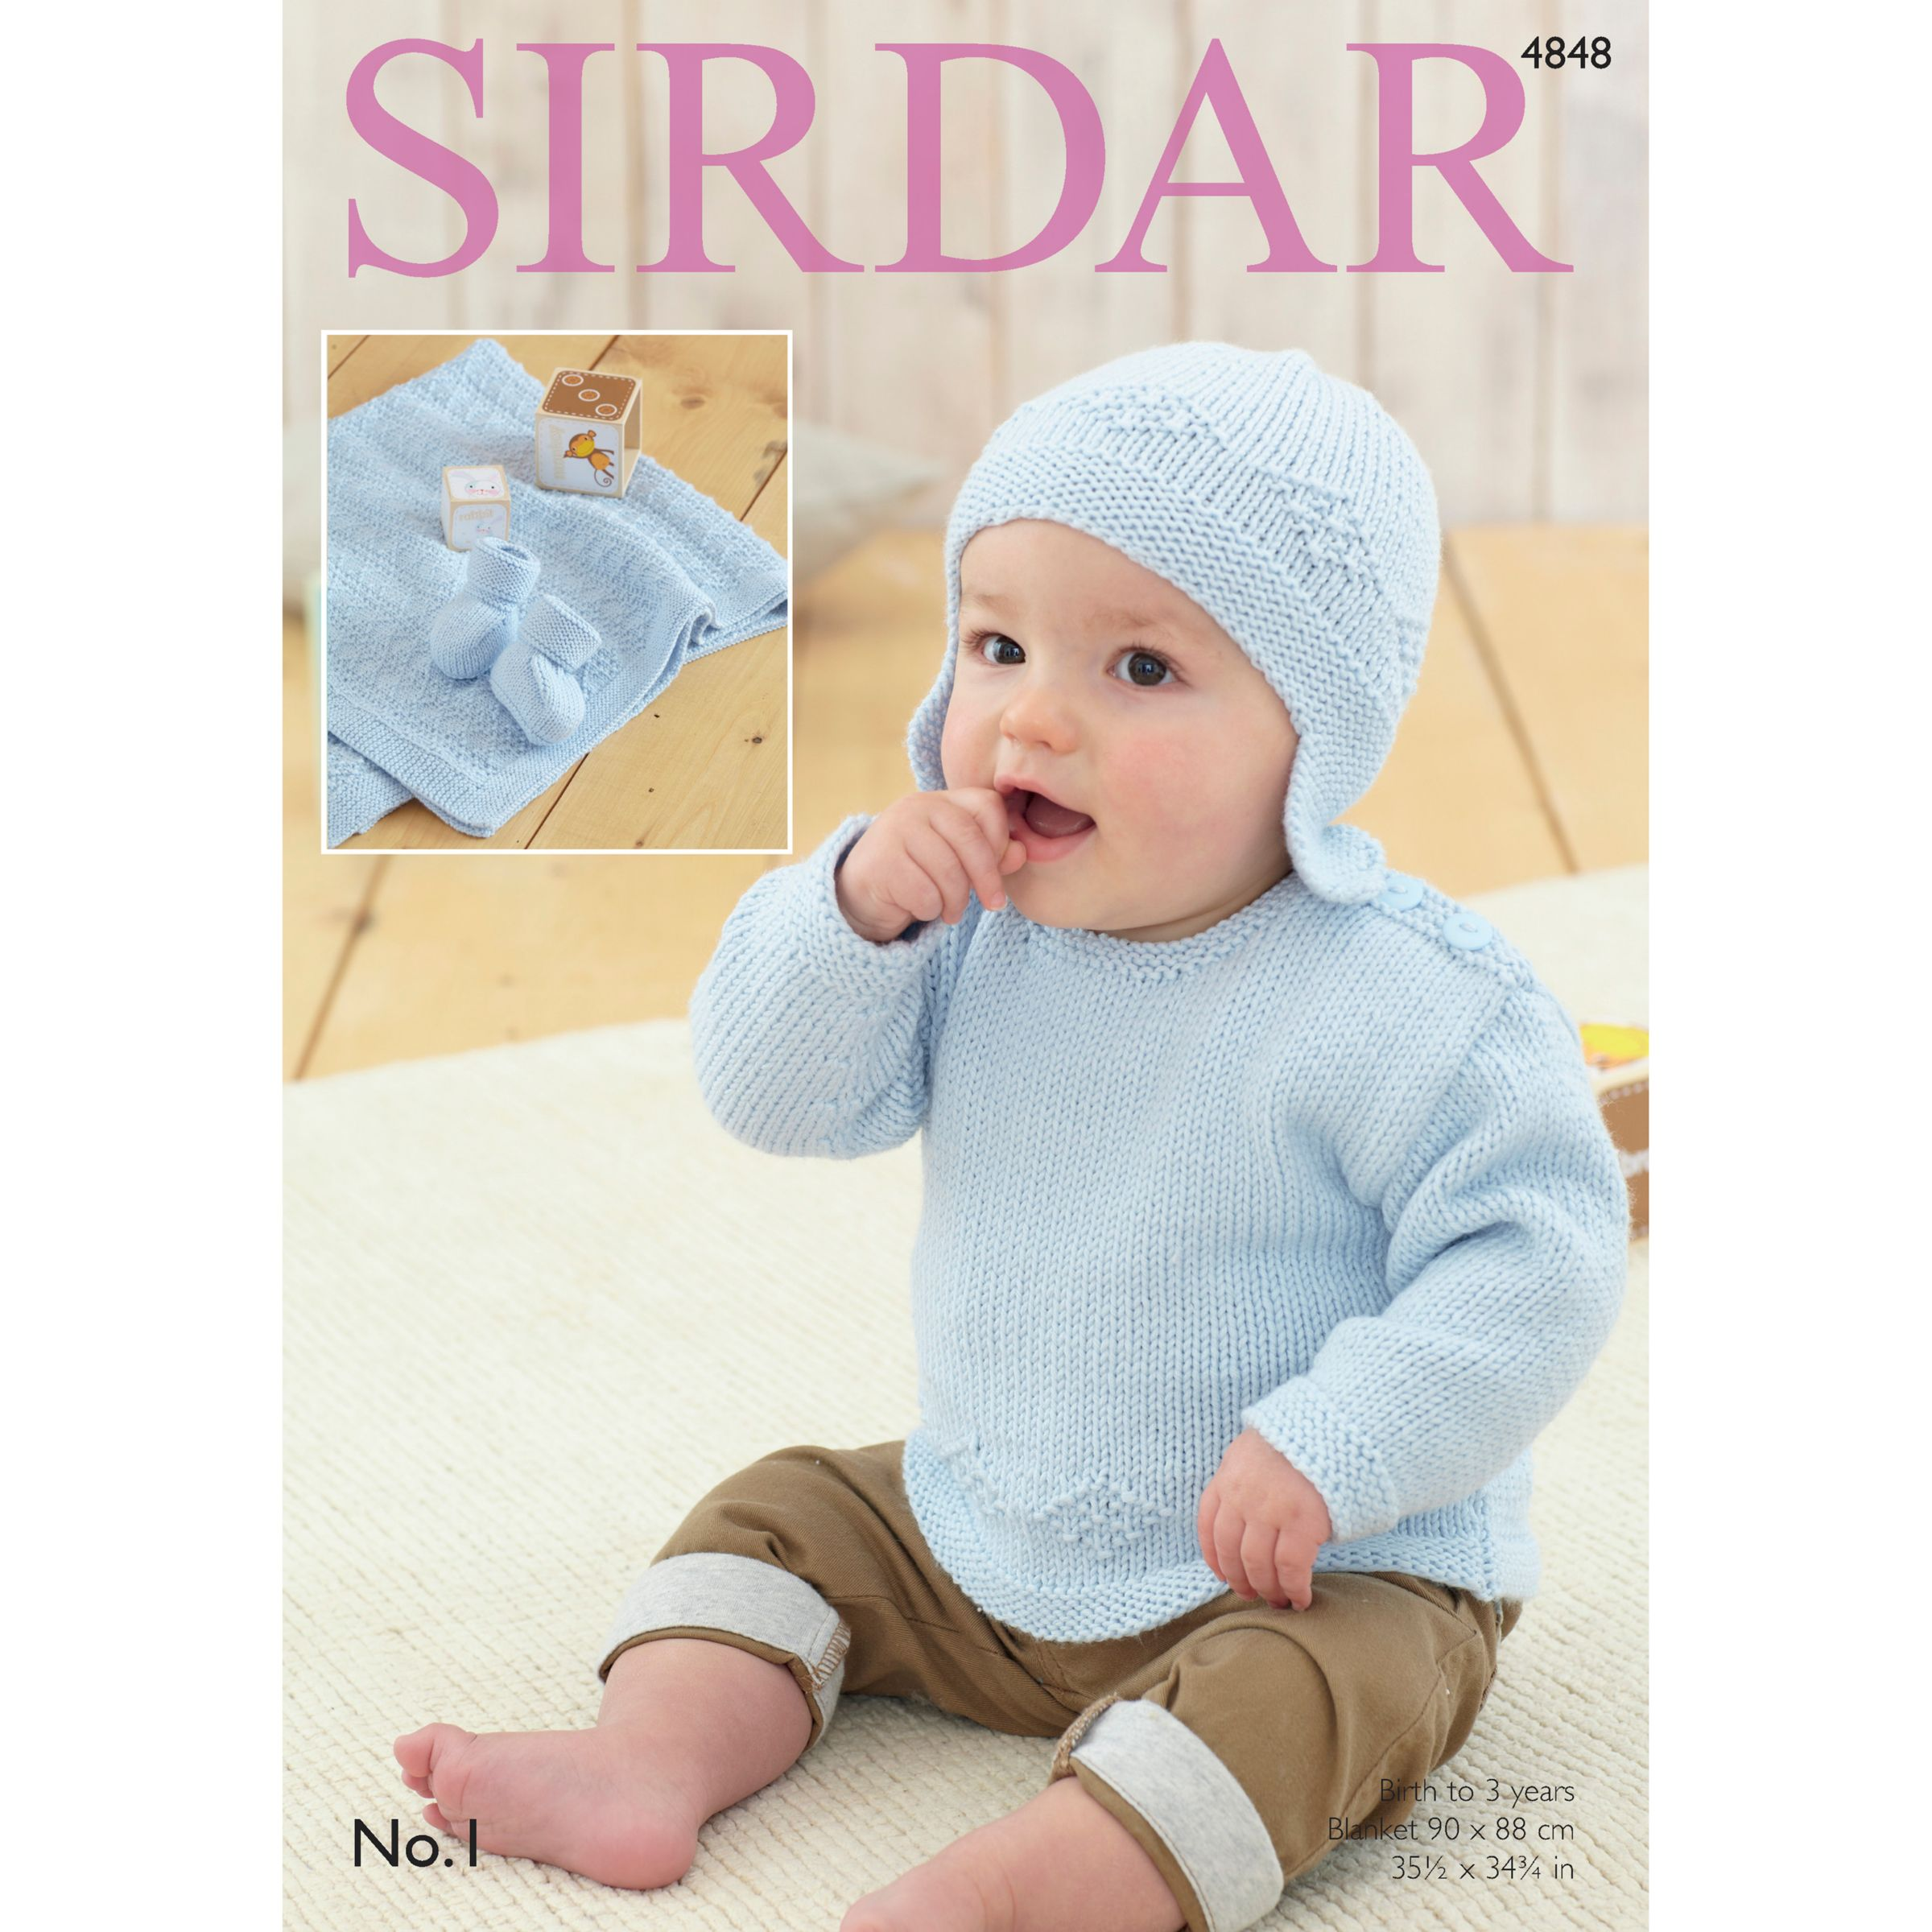 bd7c28679 Sirdar No 1 DK Baby s Sweater and Accessories Patterns